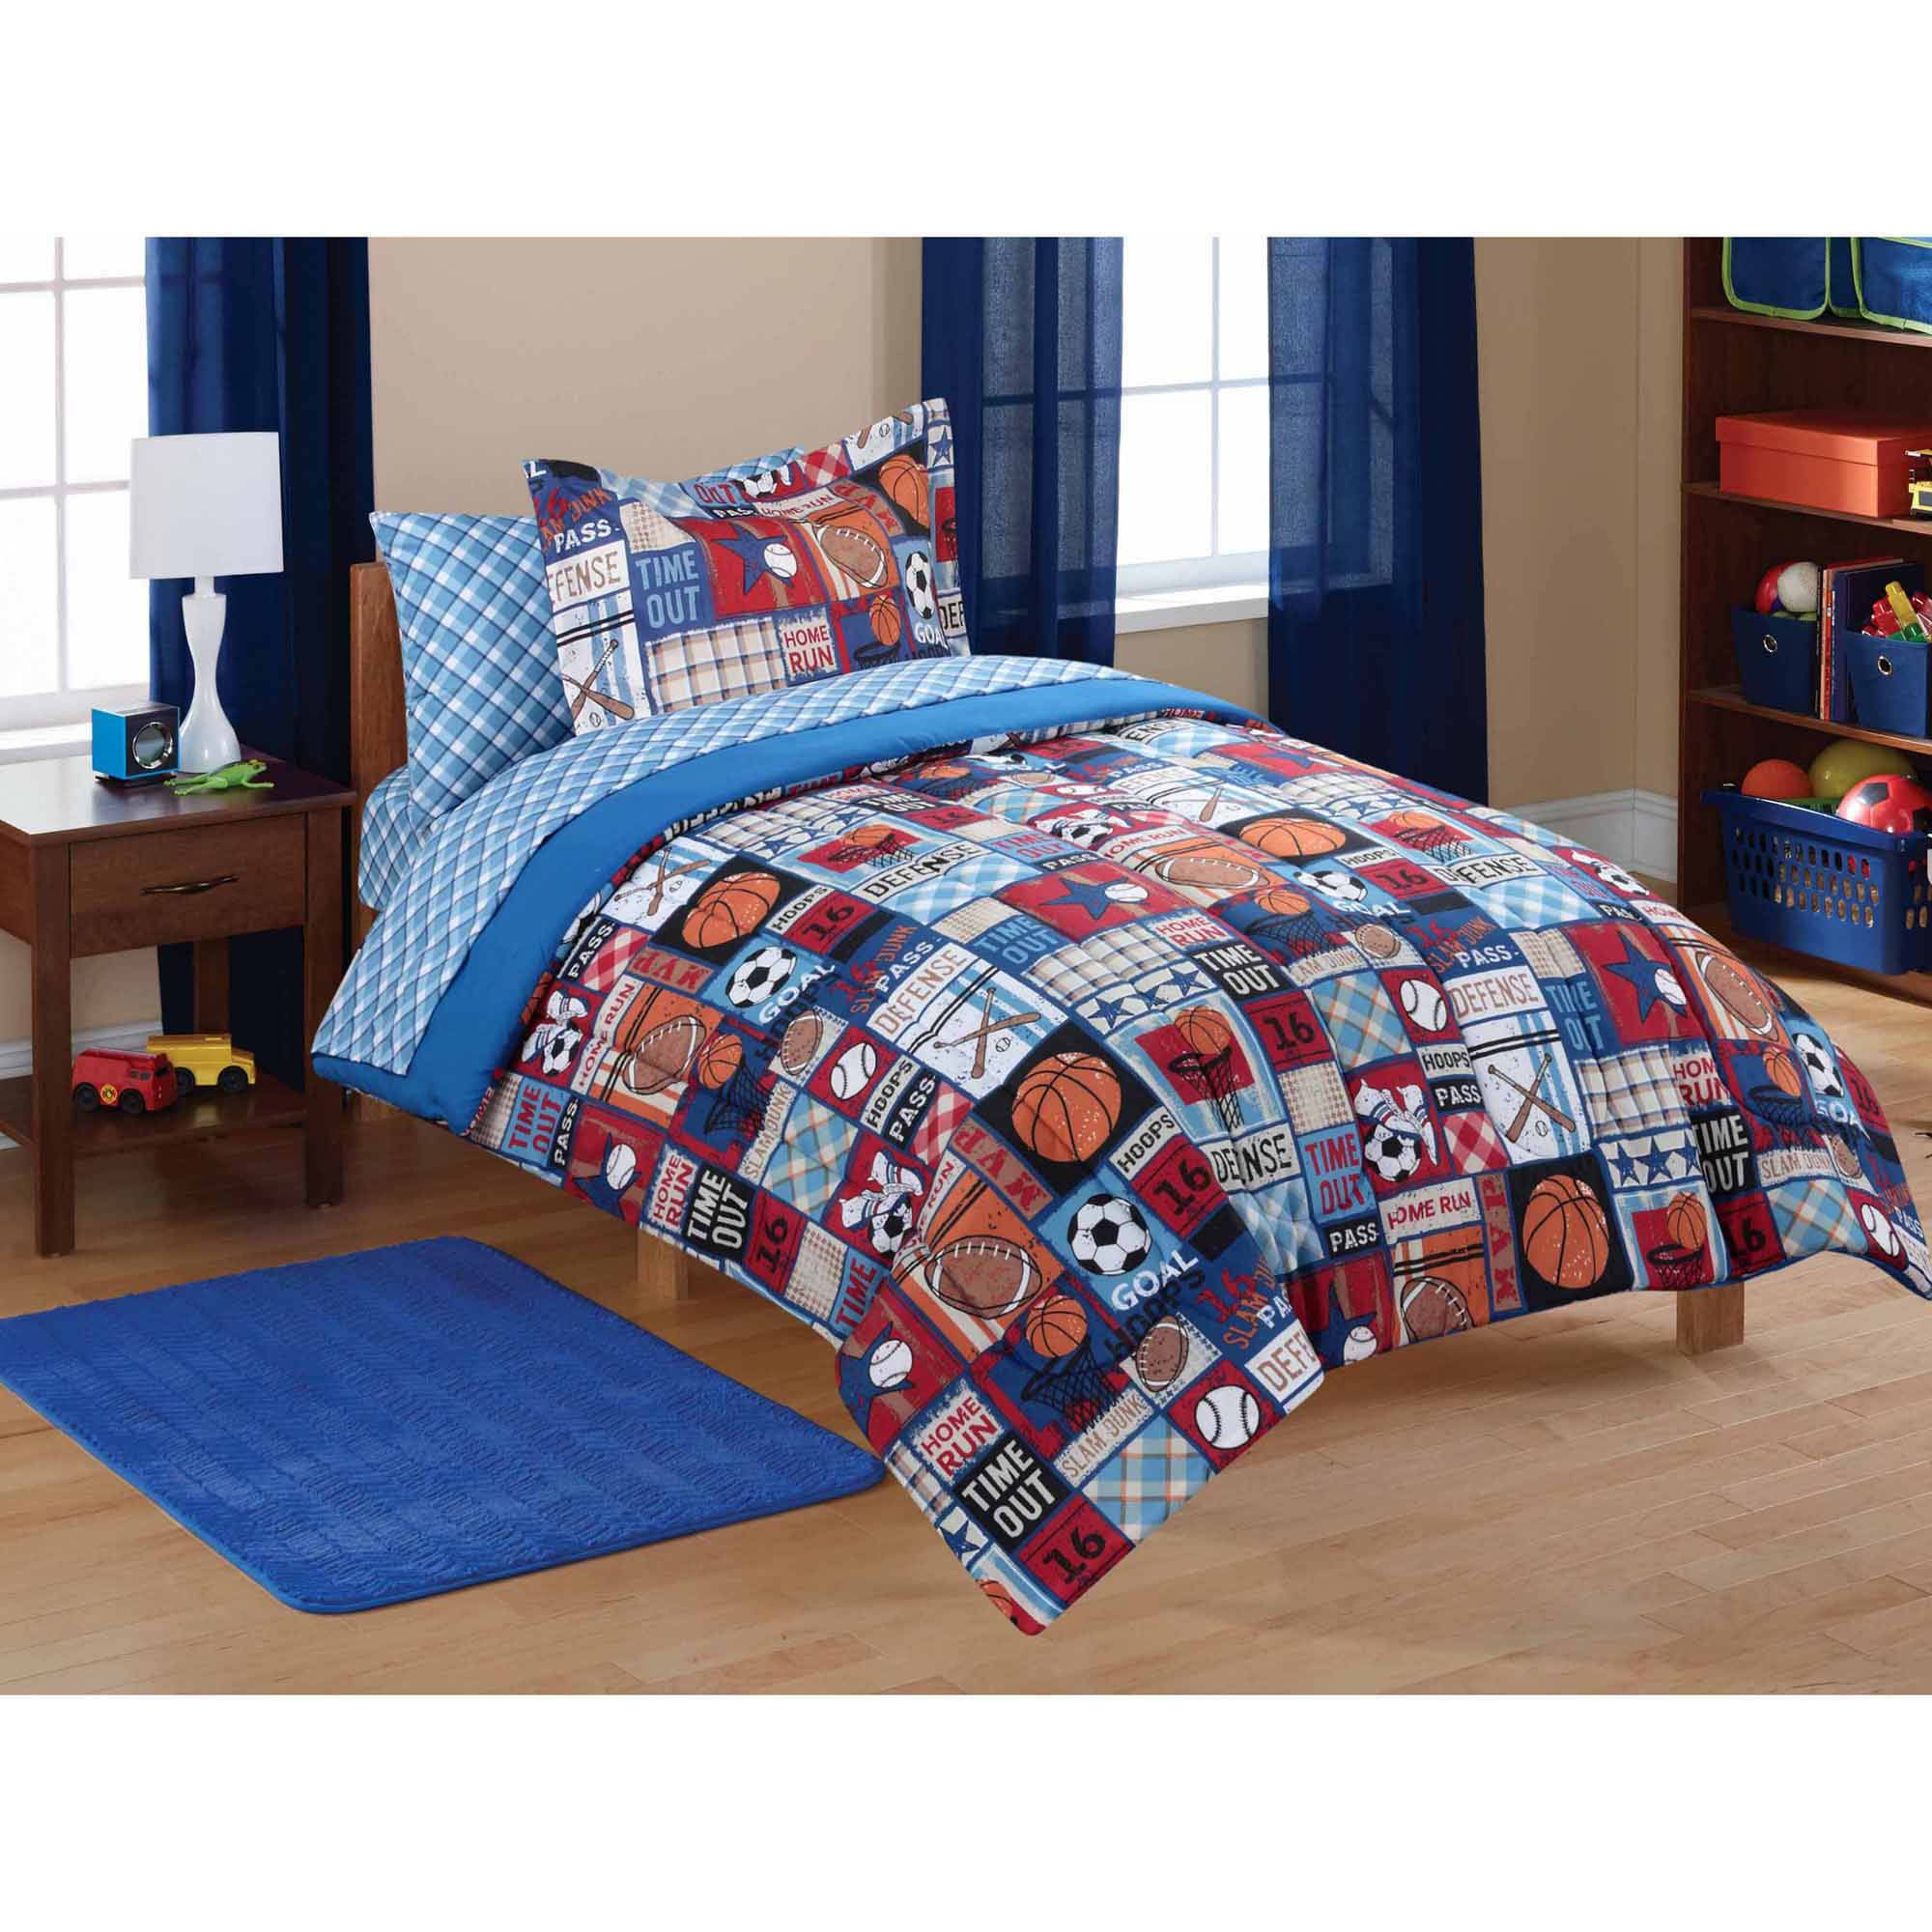 Mainstays Kids' Sports Patch Coordinated Bed in a Bag Deal ... : sports quilt bedding - Adamdwight.com